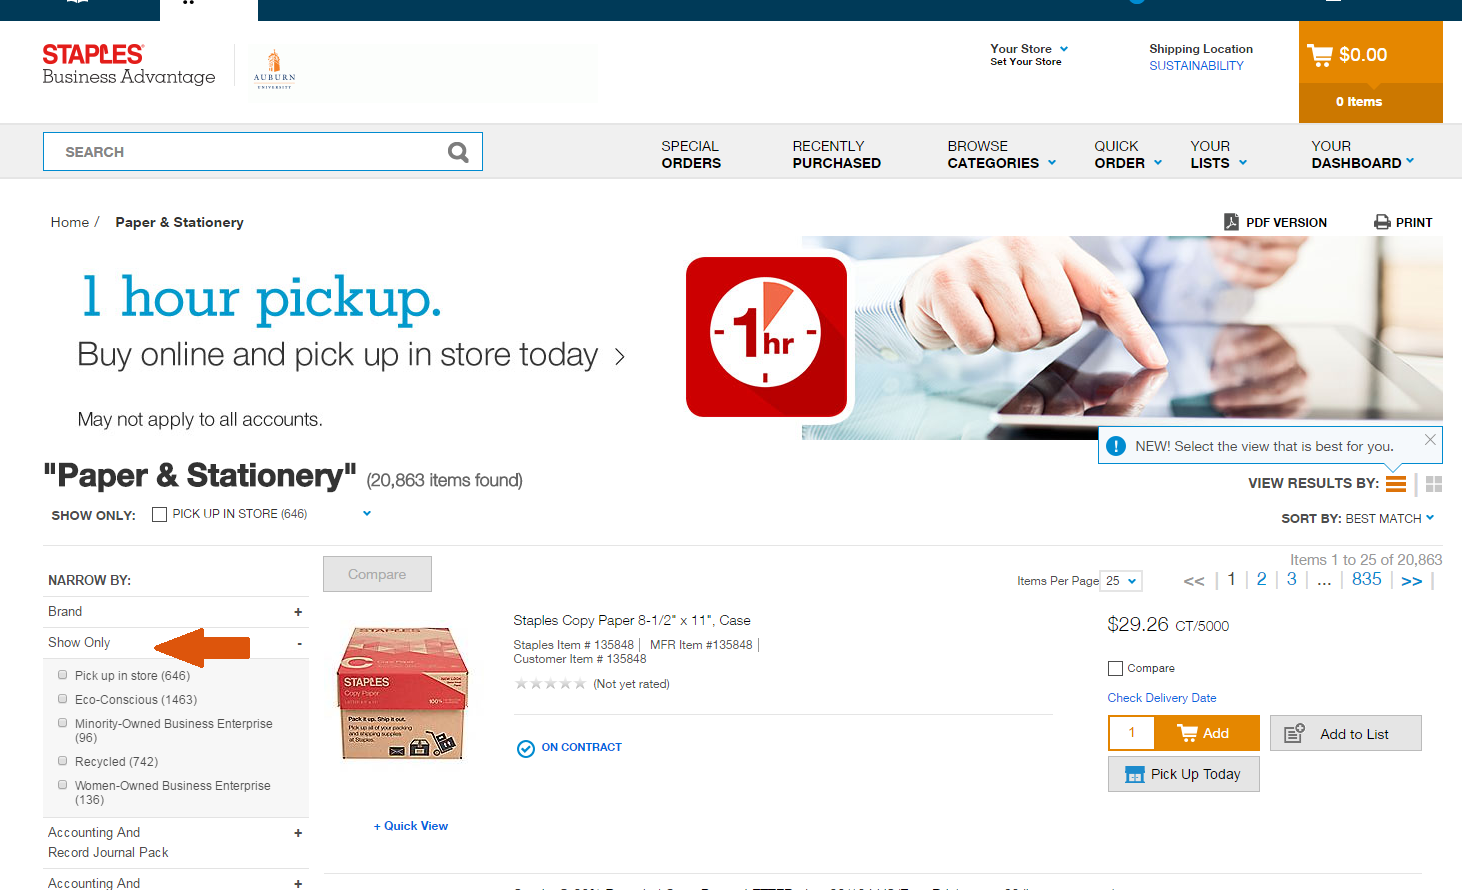 Screenshot of Staples Advantage website showing filtering options on sidebar.